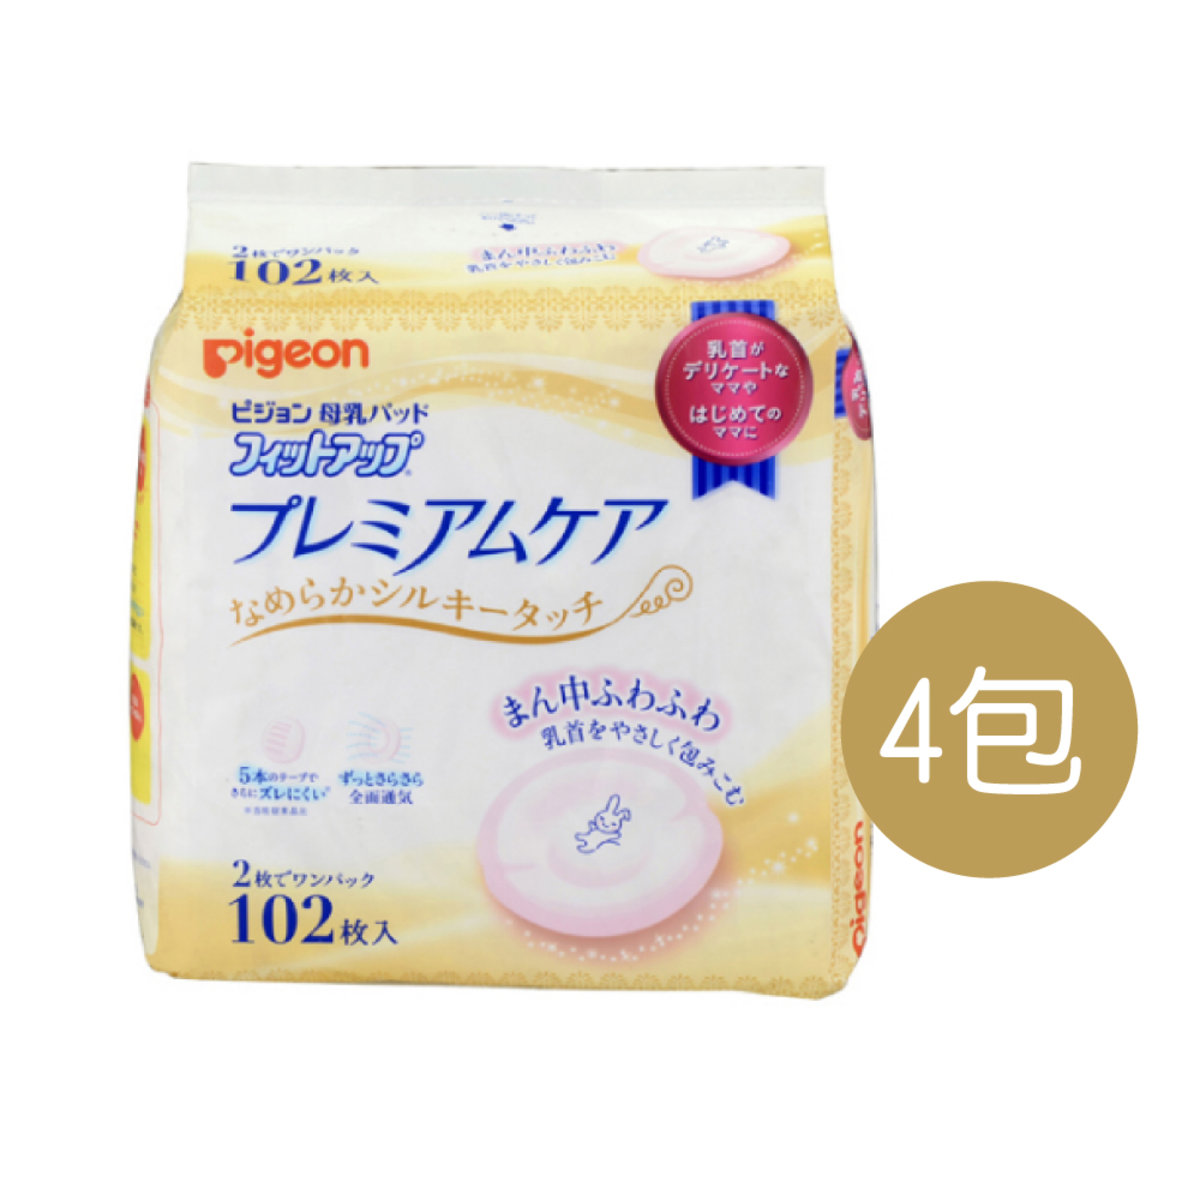 Extra soft and allergy breast pad 102 pieces 4 packs (balanced import)